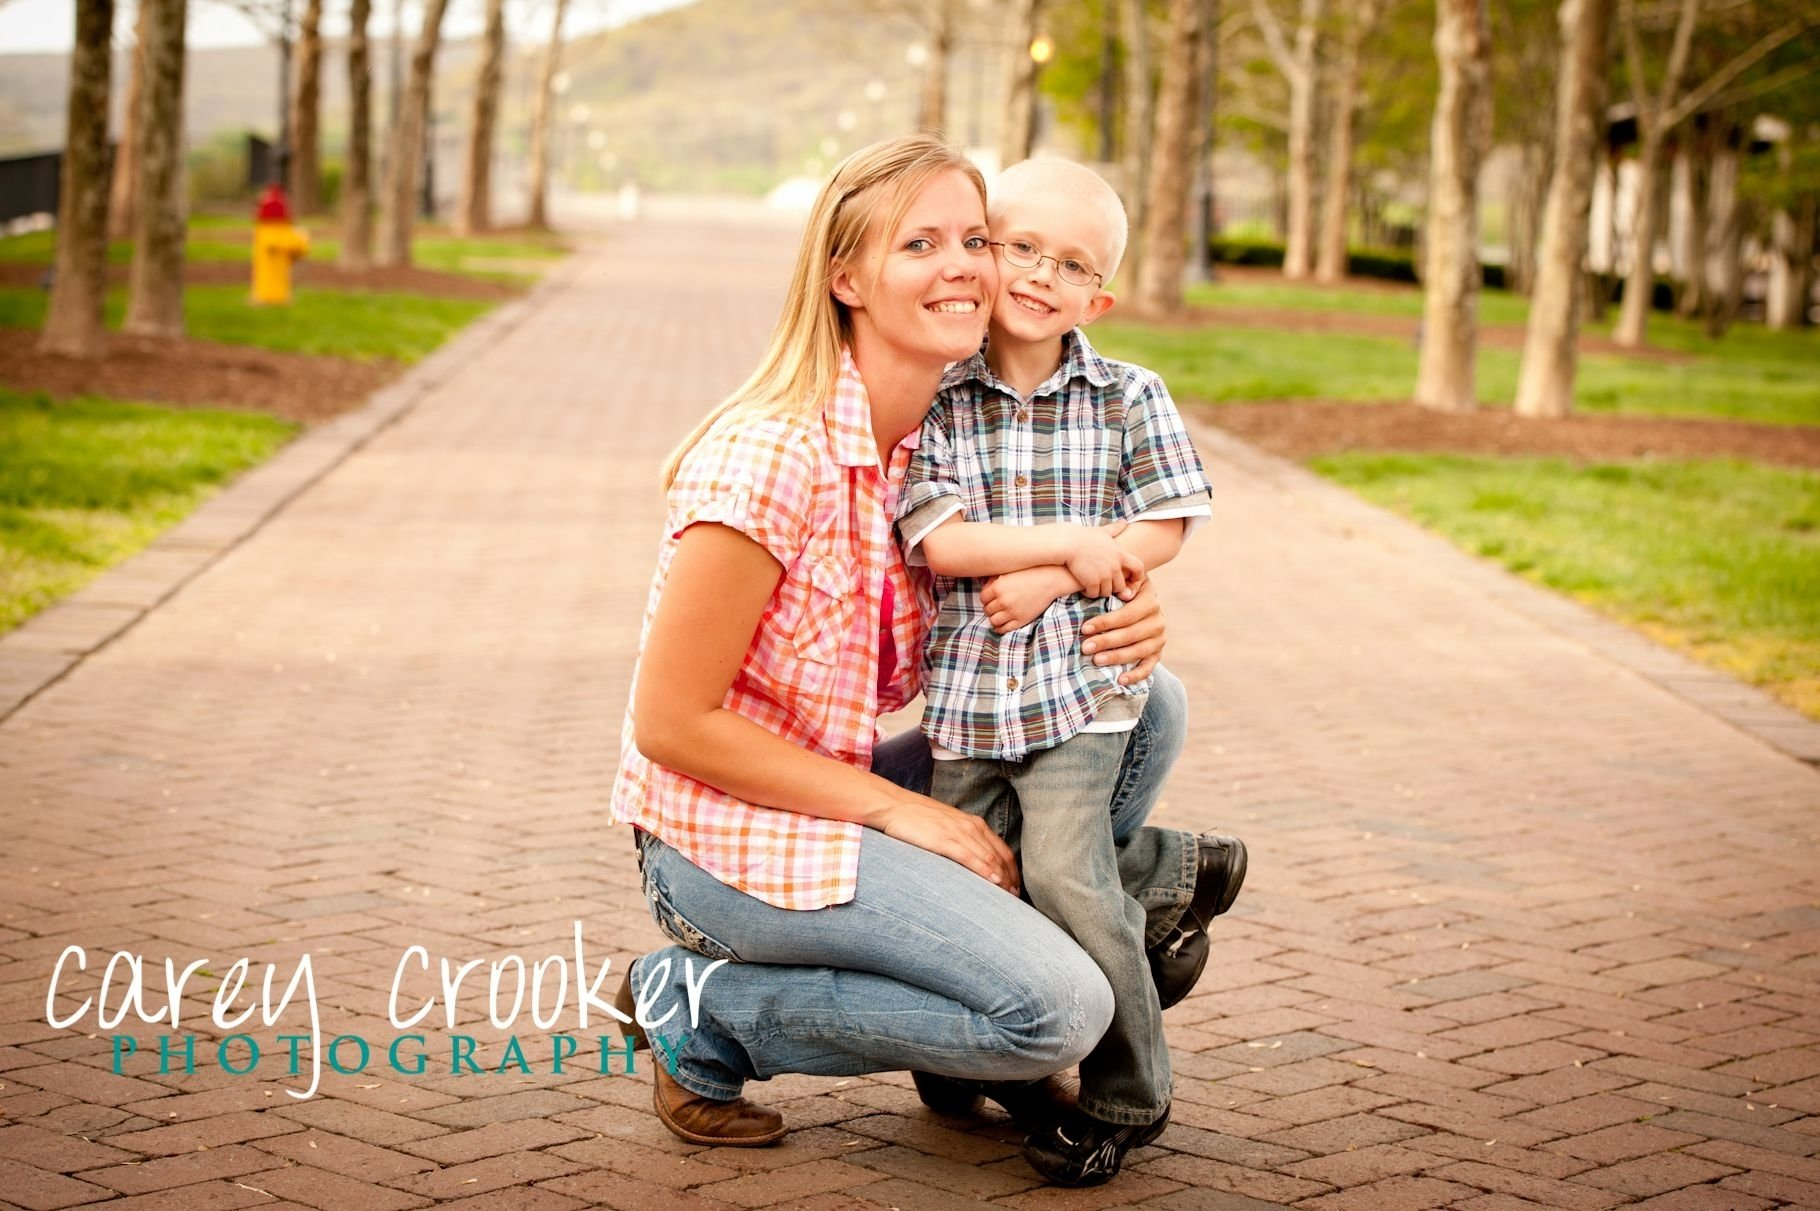 10 Gorgeous Mother And Son Photography Ideas sara david williams mother son portraits mother son mother son 1 2021